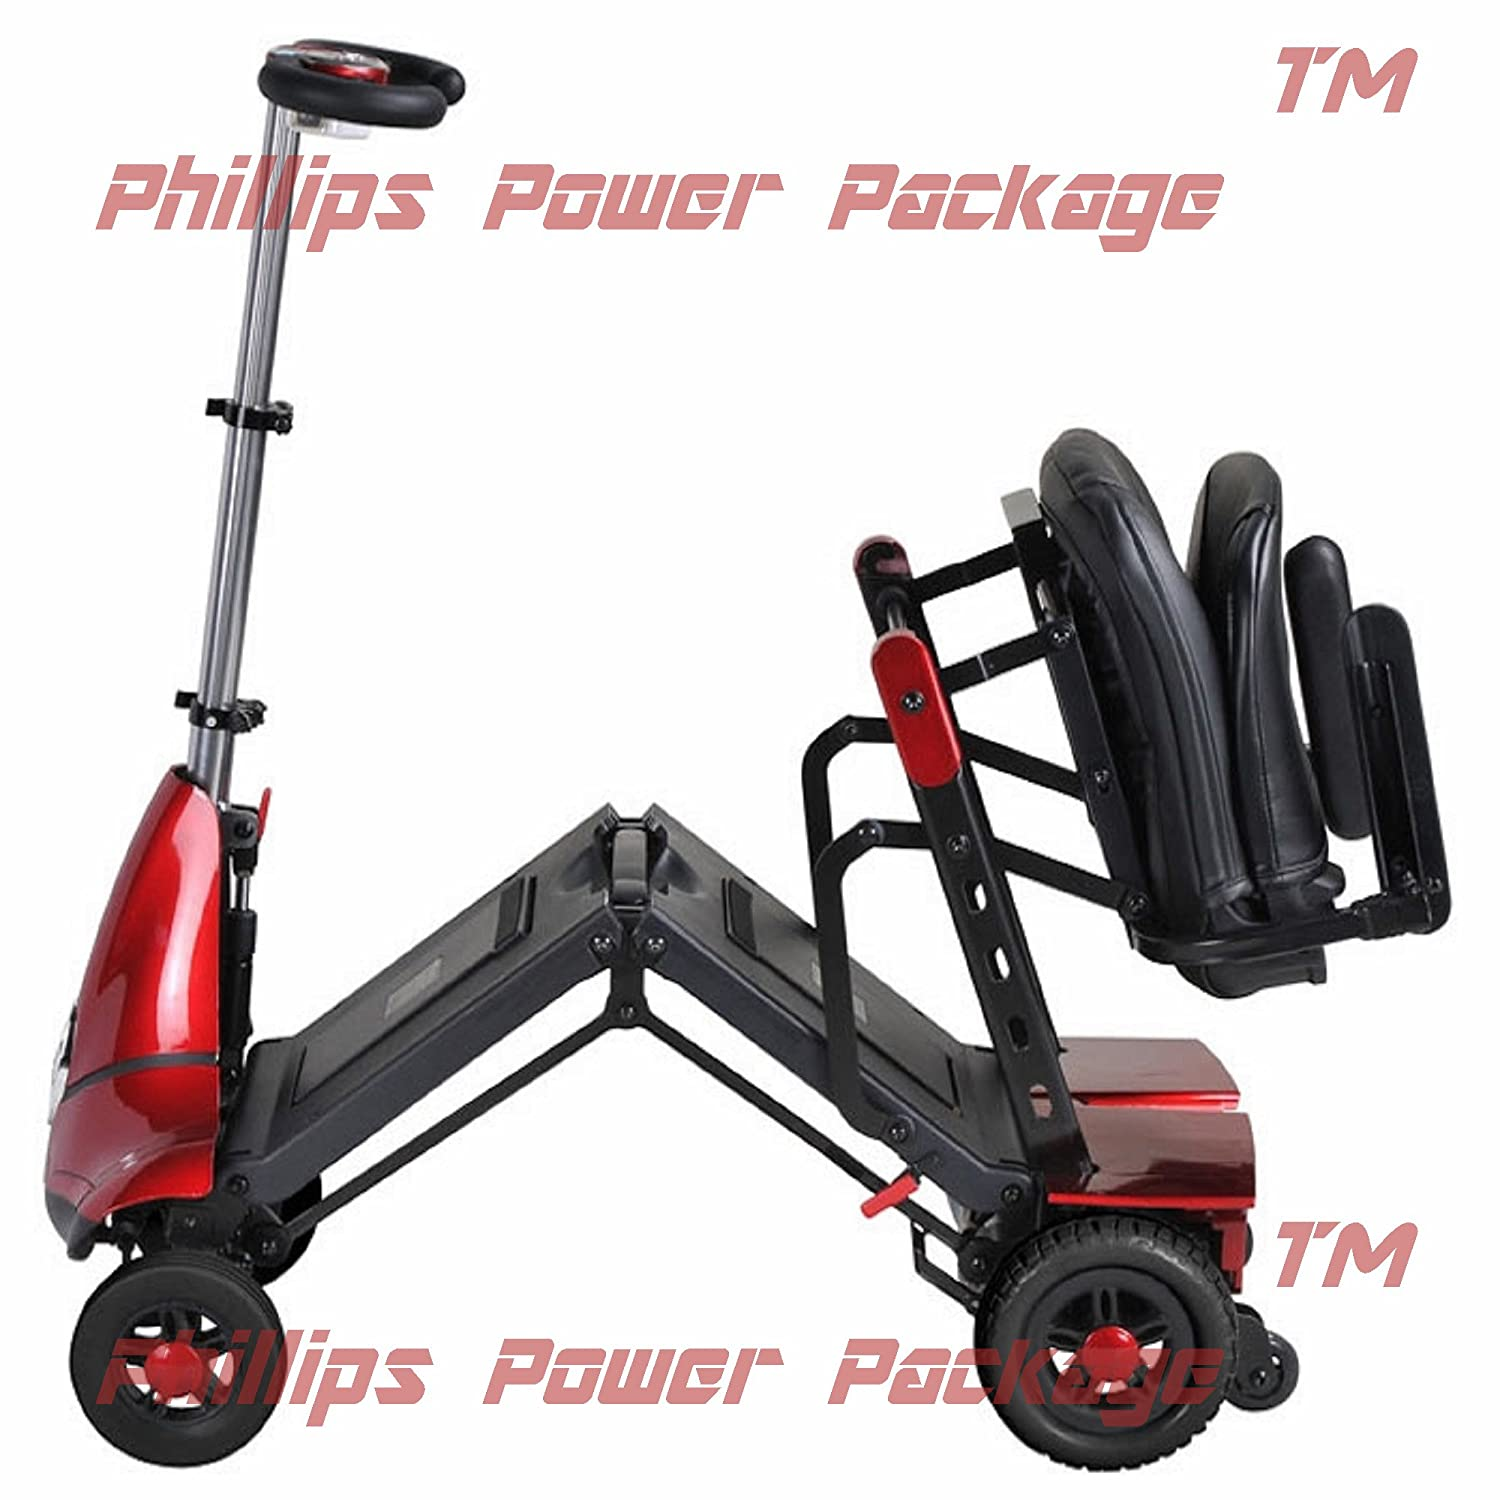 Amazon.com: Solax Mobility - Mobie Classic - Folding Travel Scooter - 4-Wheel - Red - PHILLIPS POWER PACKAGE TM - TO $500 VALUE: Health & Personal Care